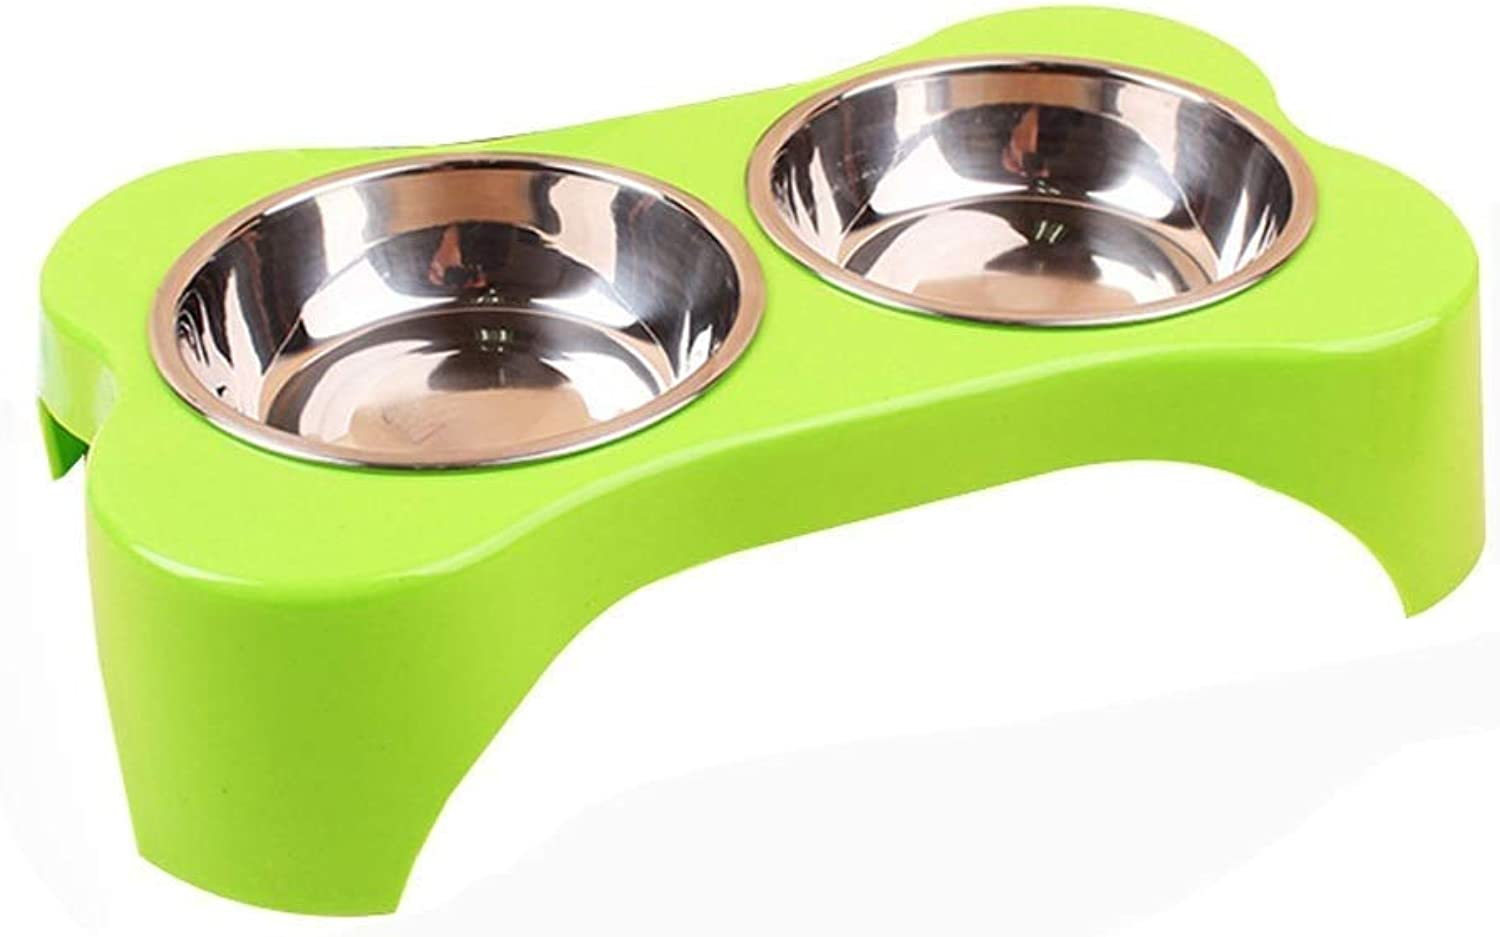 WSJTT Double Stainless Steel Dog Cat Bowls with Double Bowl NonSlip Dog Bowl Double Bowl Pet Plastic Bowl Dog Food Bowl Cat Bowl for Pet Food and Water Feeder (color   C)